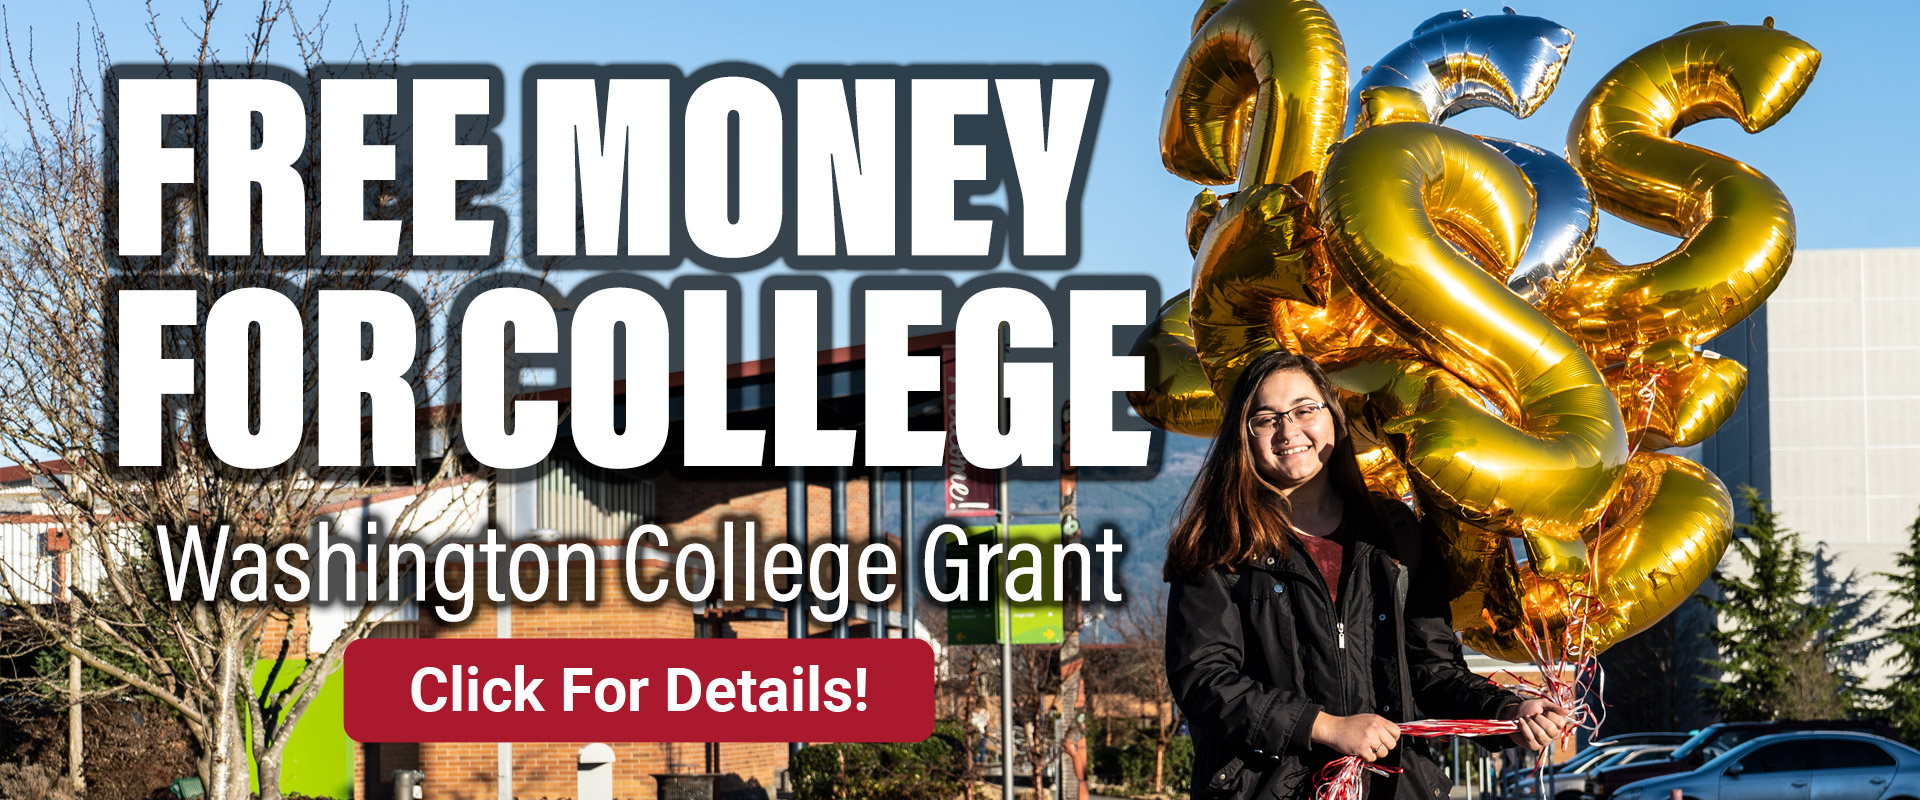 Washington College Grant homepage